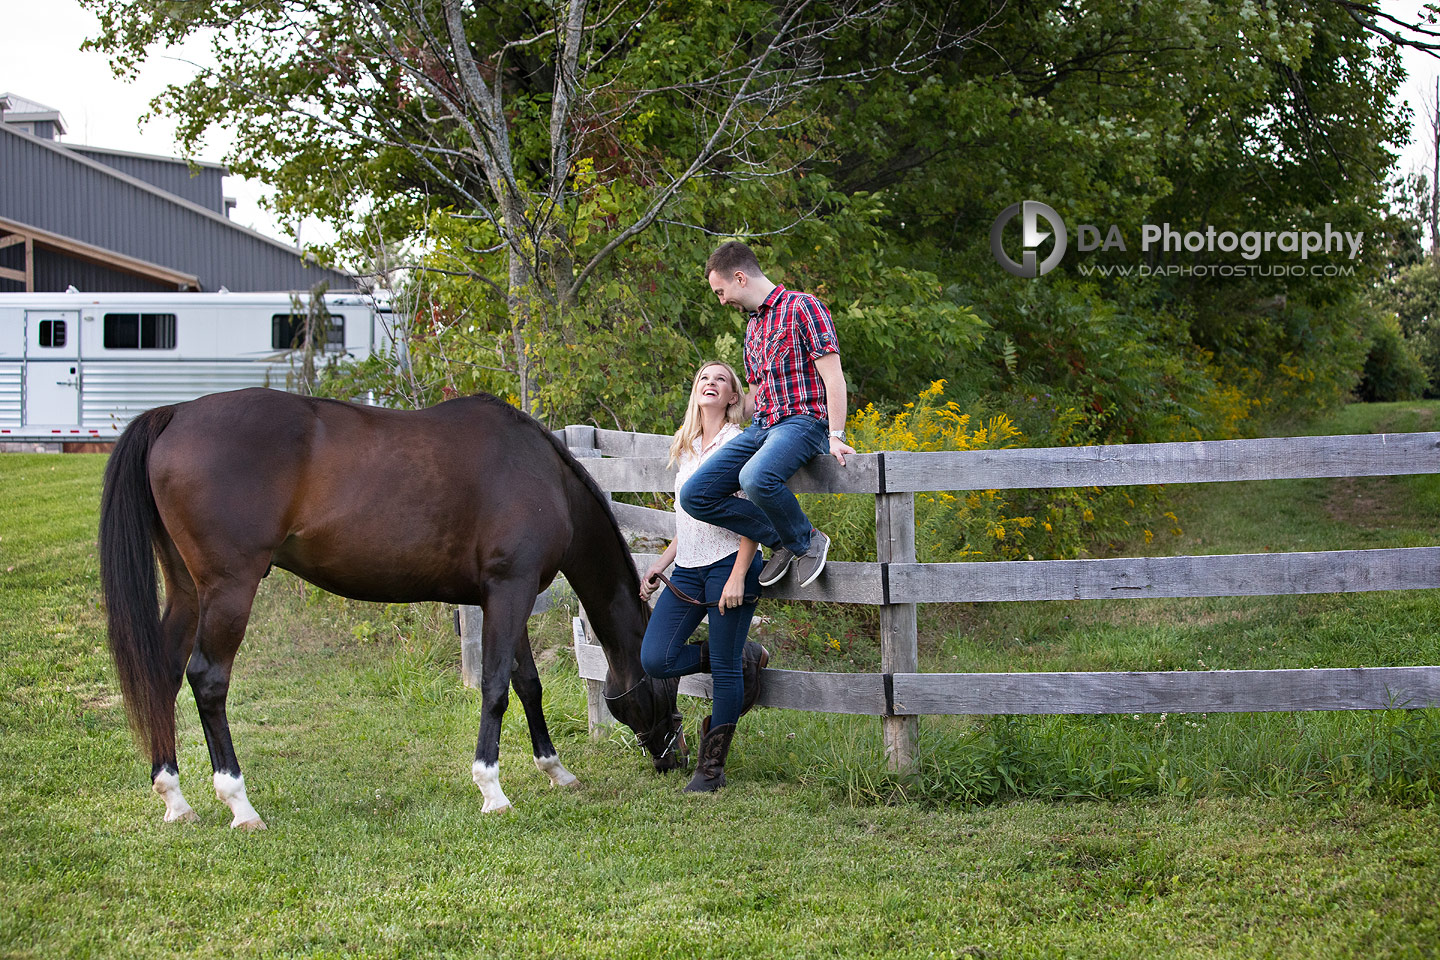 Horse Stable Engagement